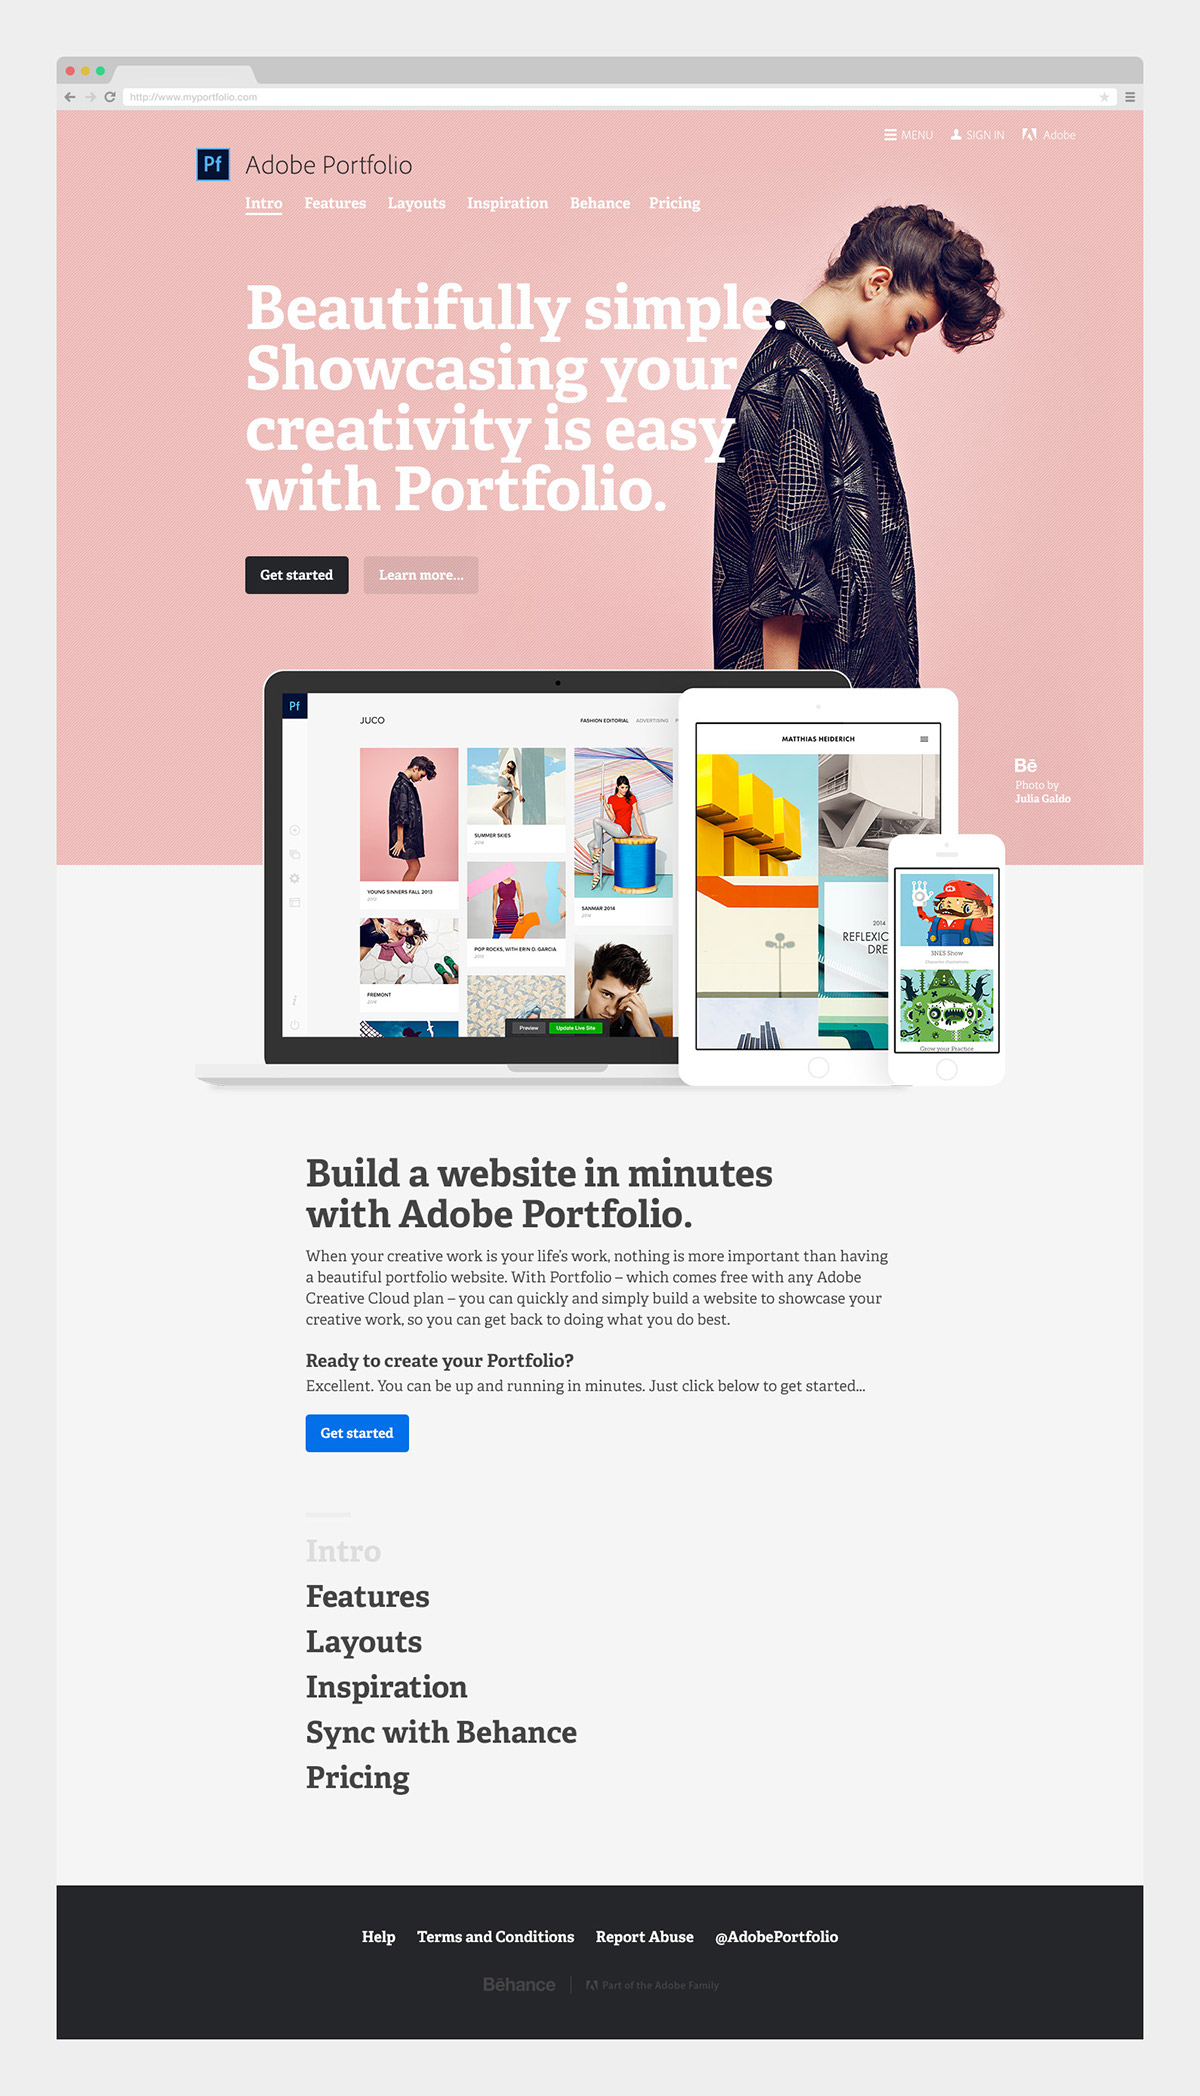 These Are Important Things To Convey In The Design Brand And Marketing Of Portfolio Course Actually Applied UI UX Product Editor